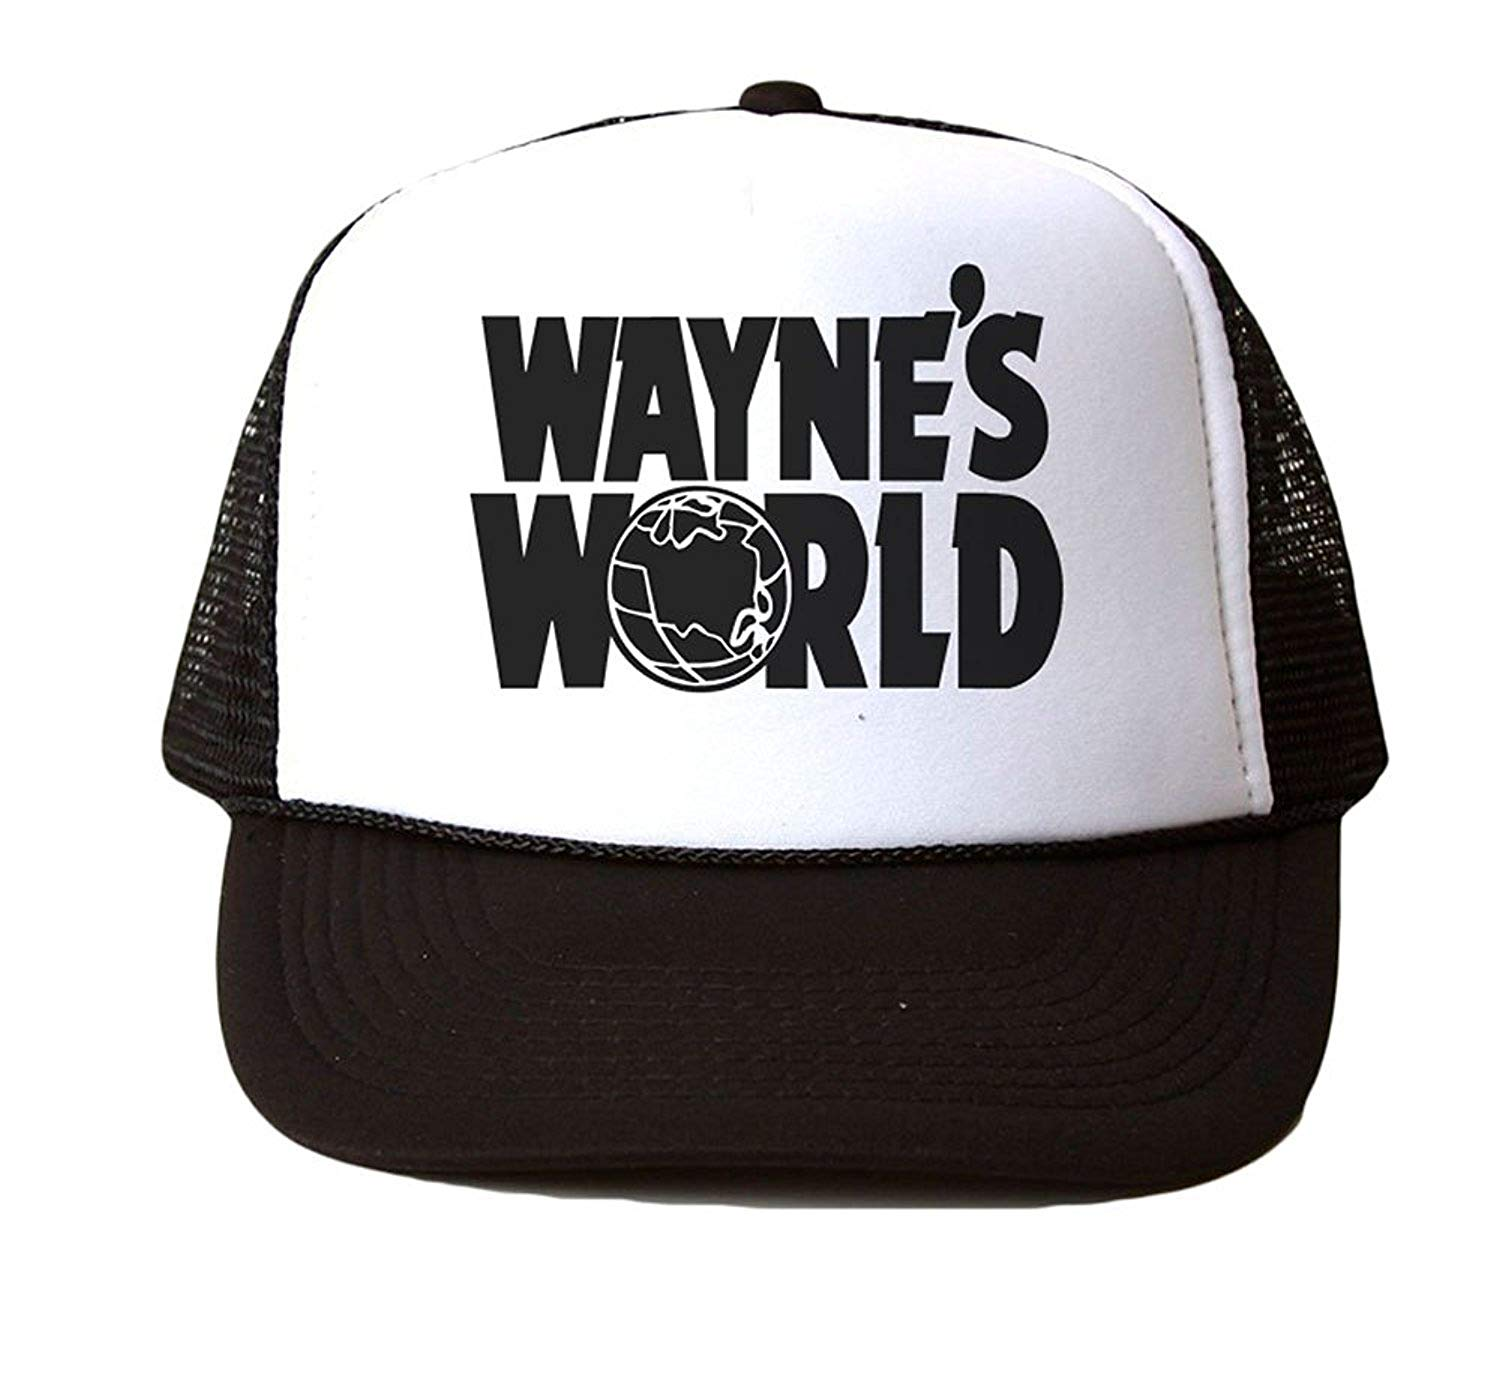 a16ea992057 Get Quotations · Wayne s World Custom Trucker Hat Cap Mesh Snapback -  White Black